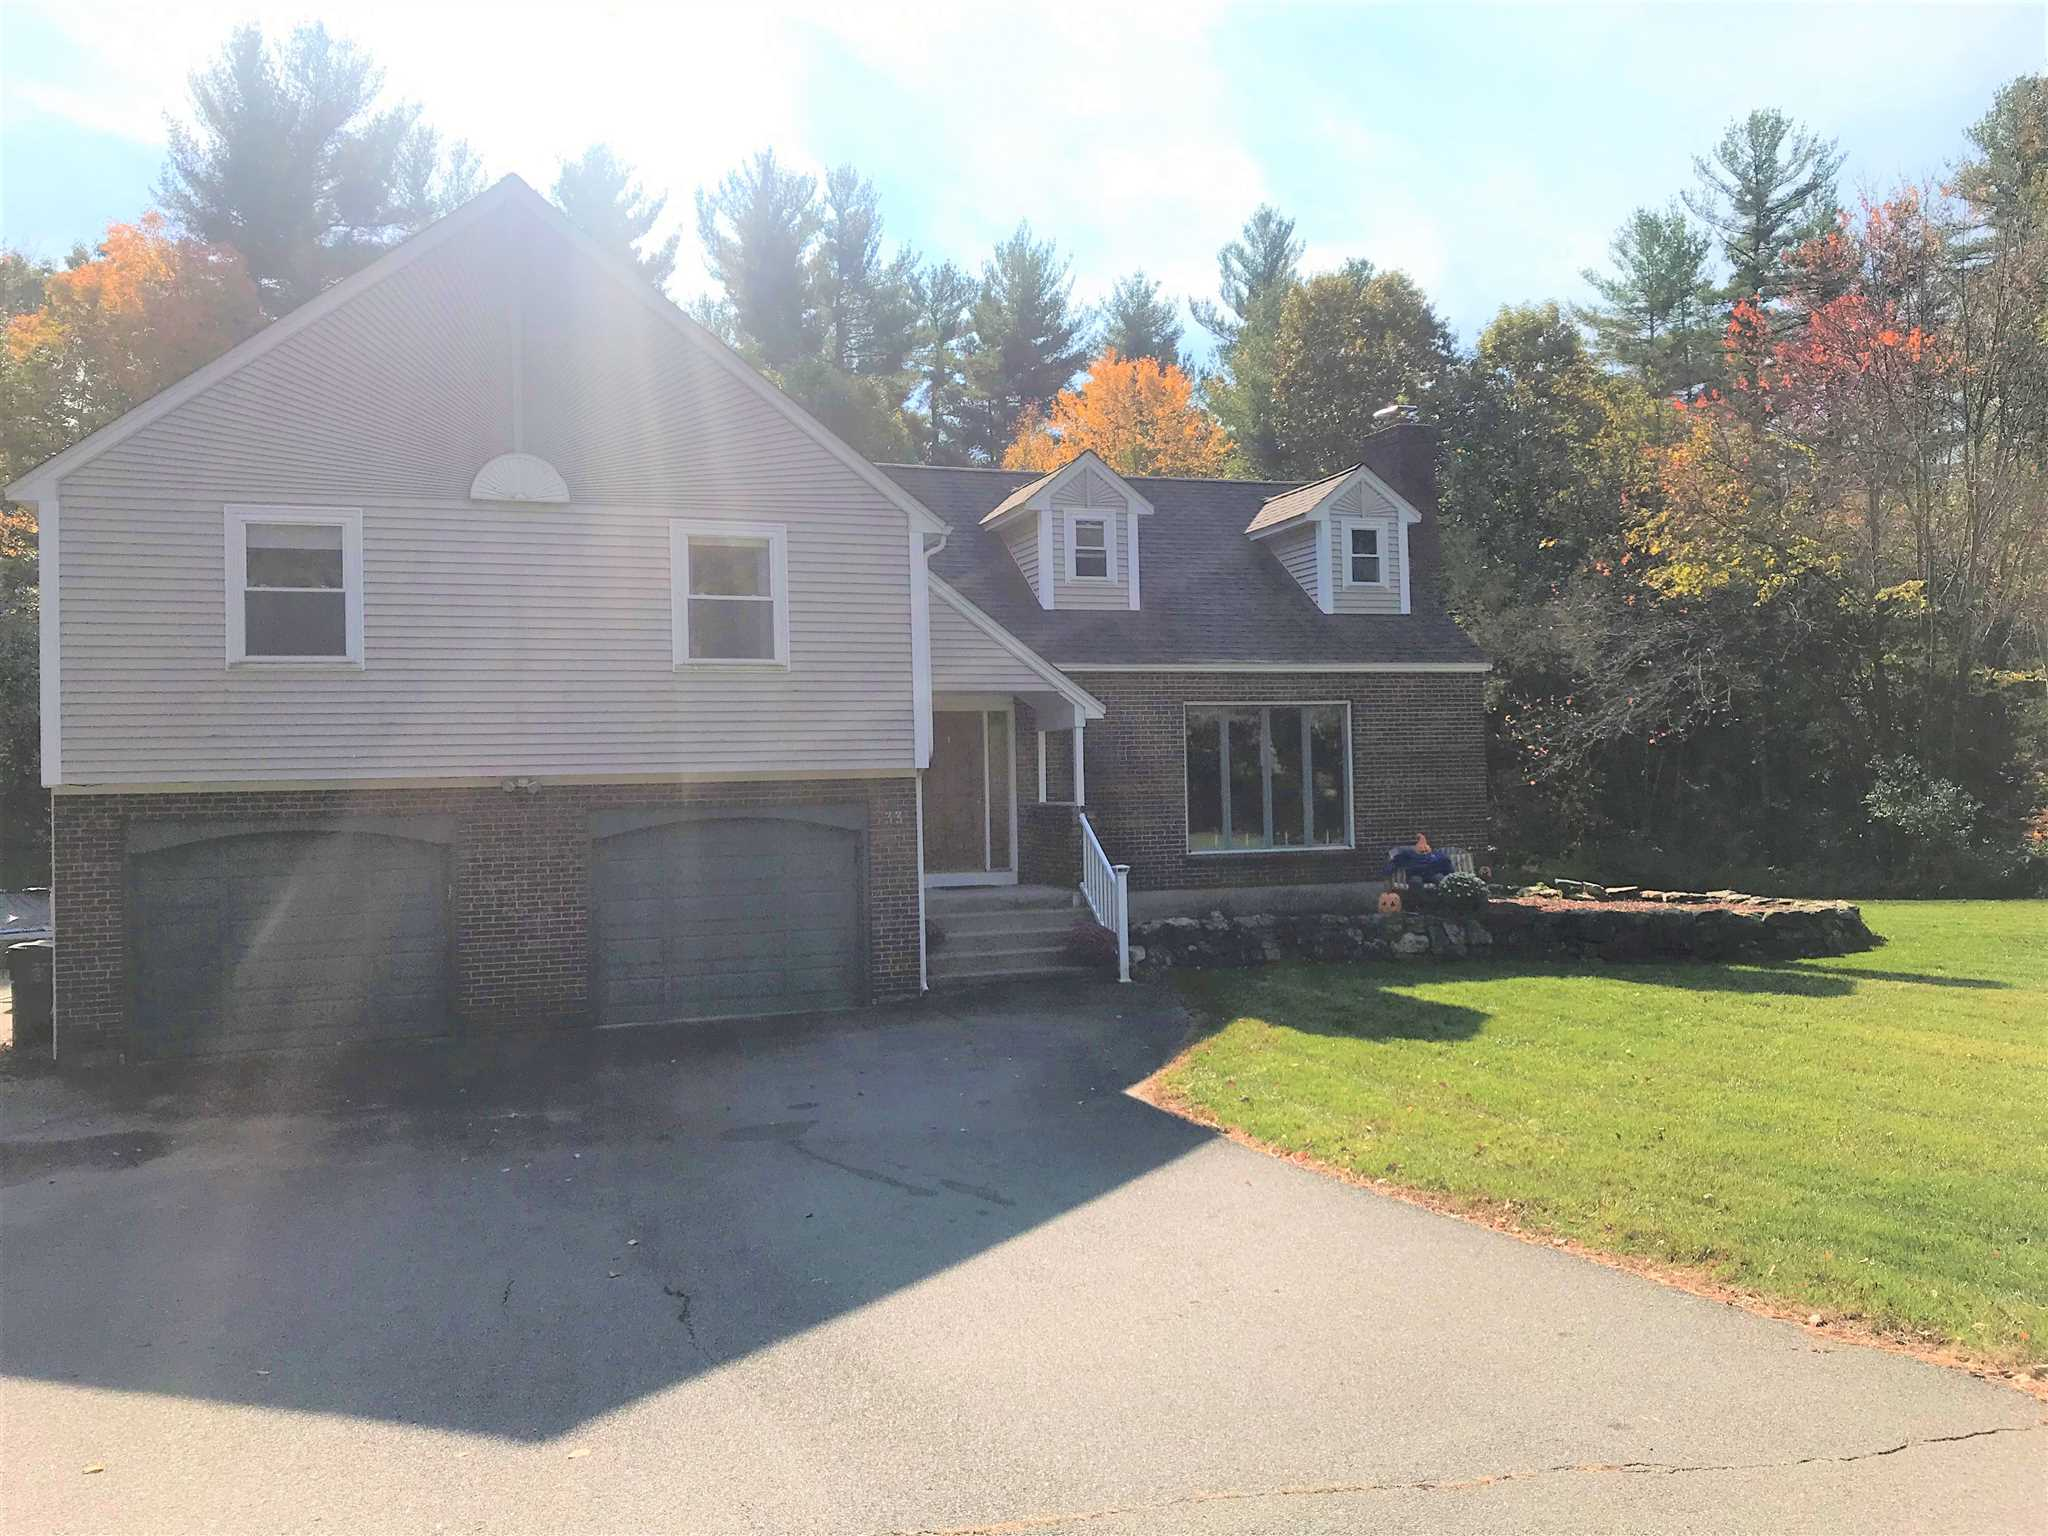 MLS 4834340: 33 Tokanel Drive, Londonderry NH